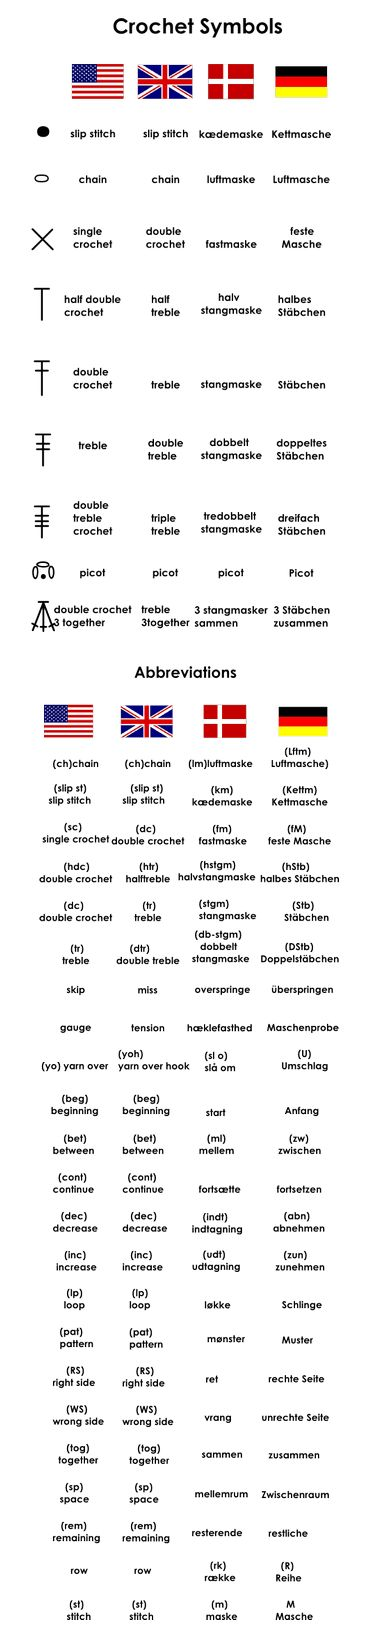 Crochet Chart Symbols & Written Pattern Terms in US English, UK English, Danish, and German | via By Number 19